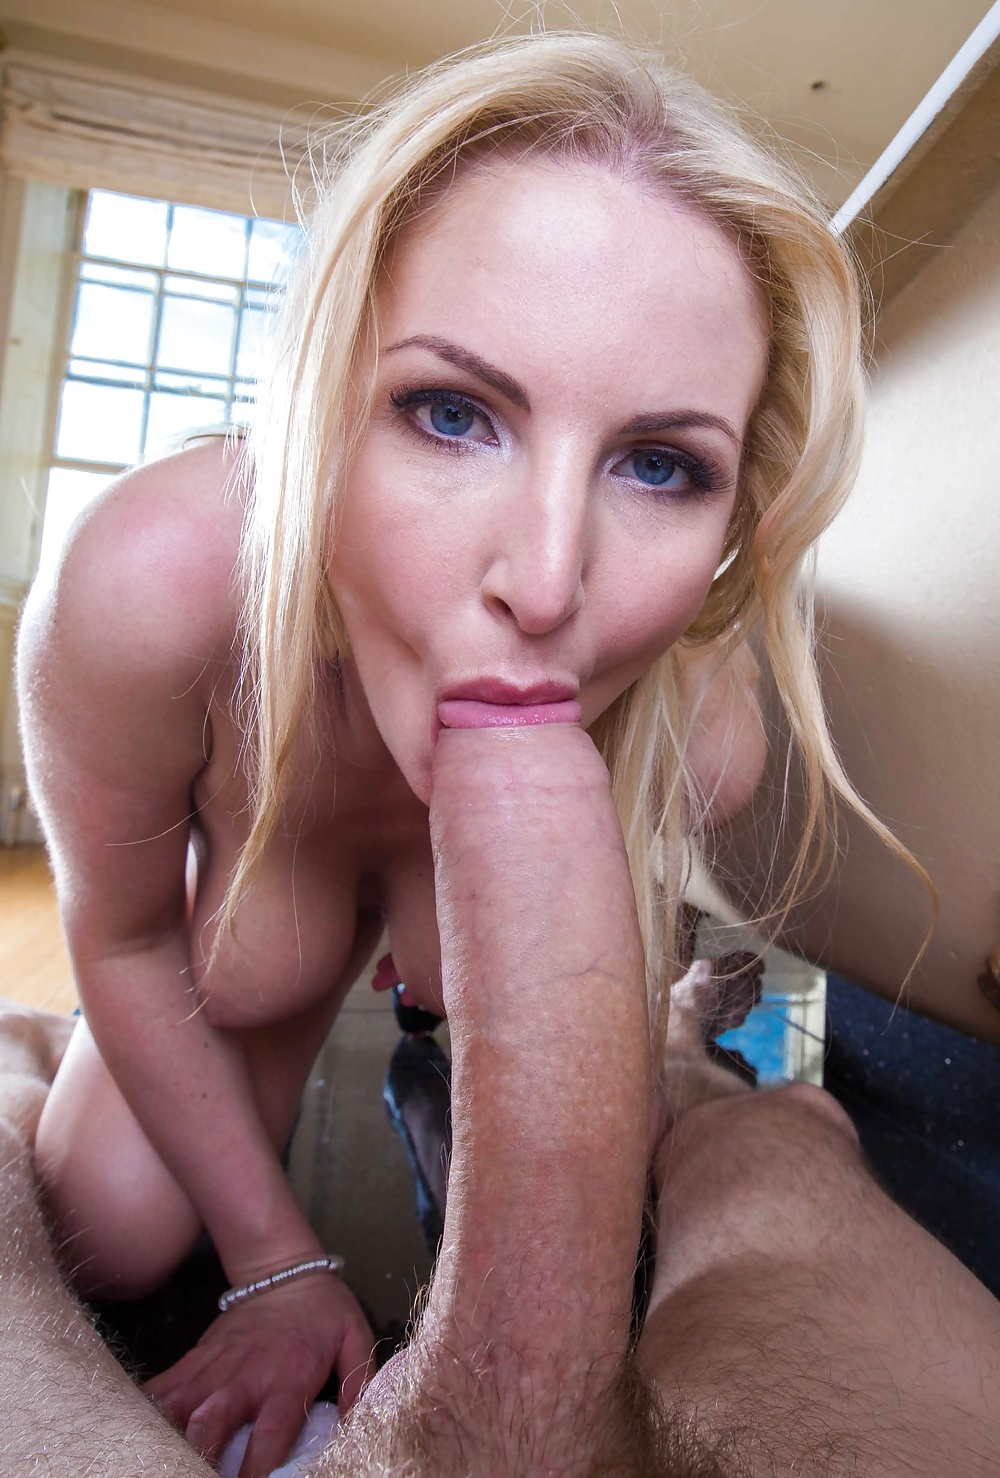 image Blonde sucks a big fat cock dry and swallows